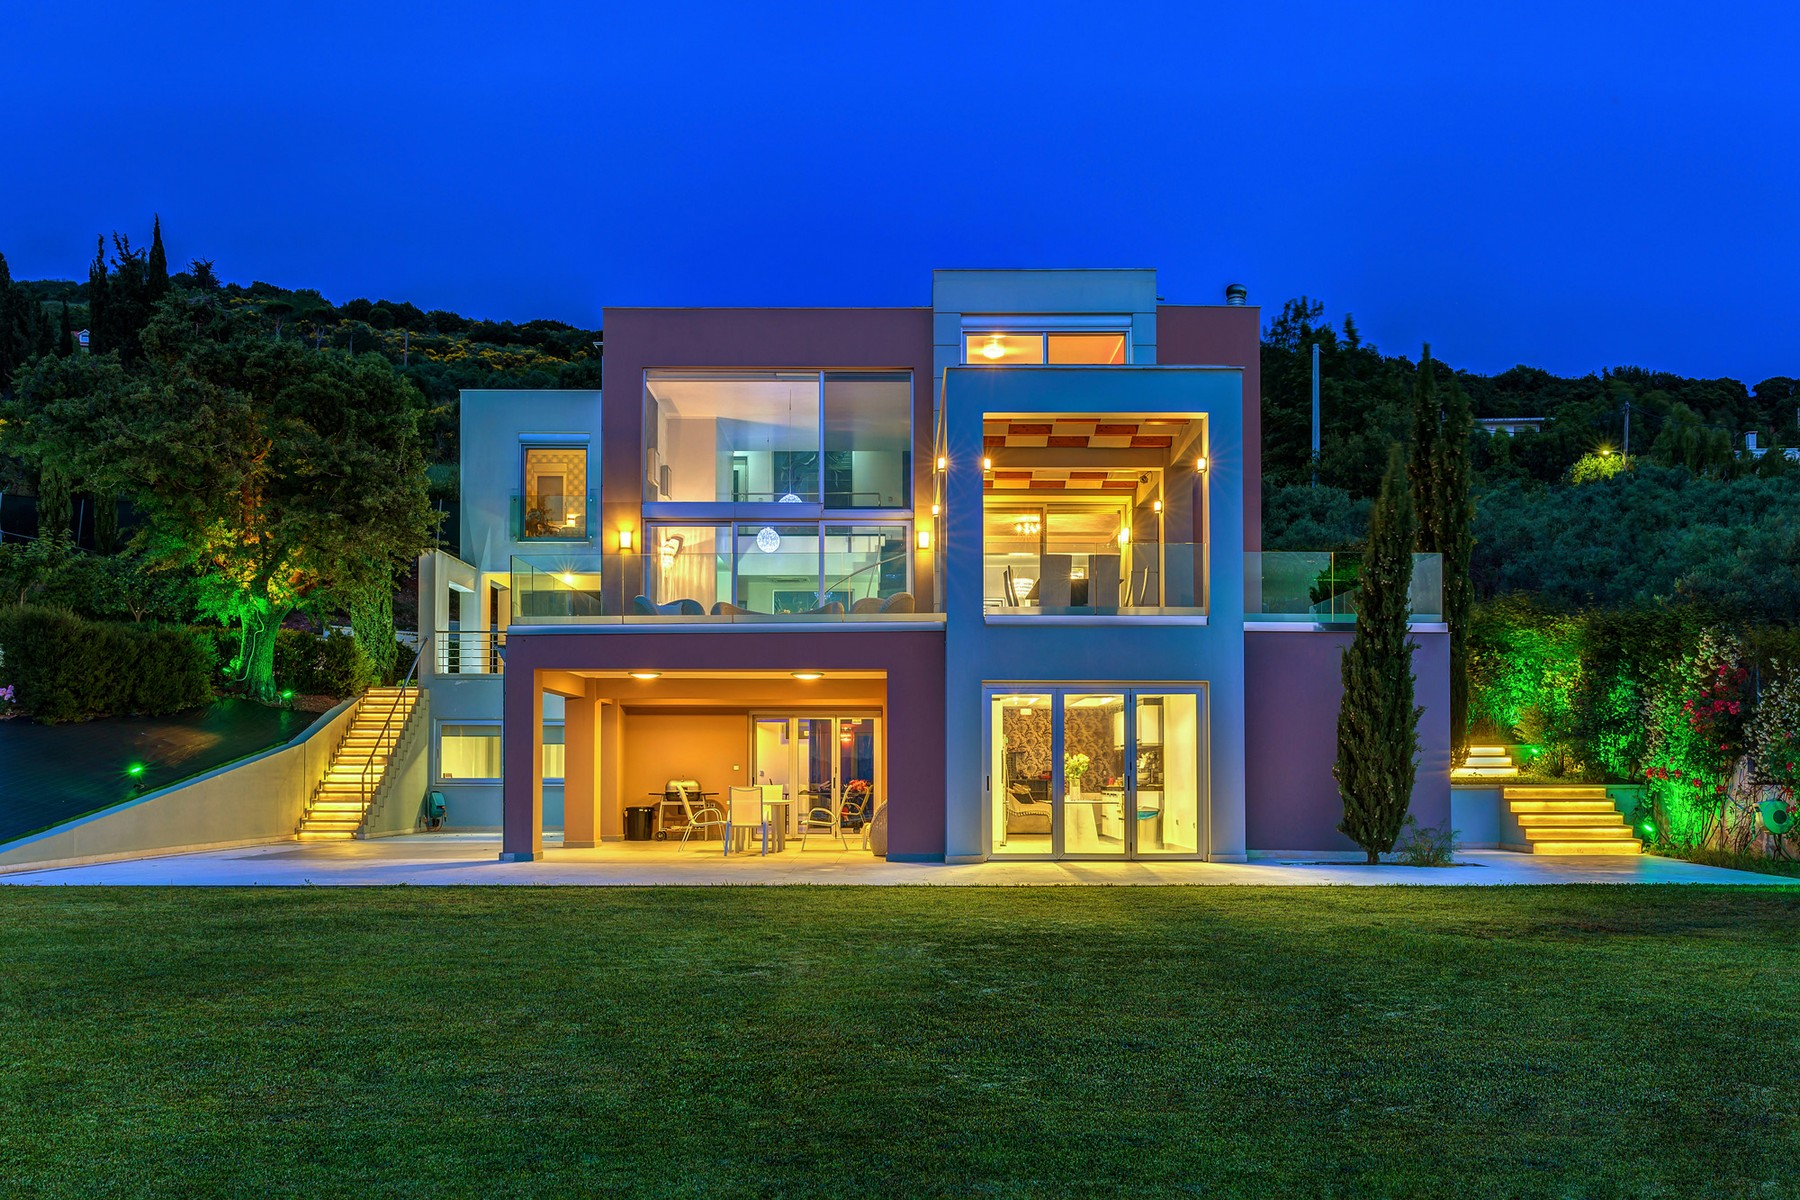 Single Family Home for Sale at Villa Alexander Rio, Patra, Achaia, Peloponnese Other Greece, Other Areas In Greece, 26500 Greece